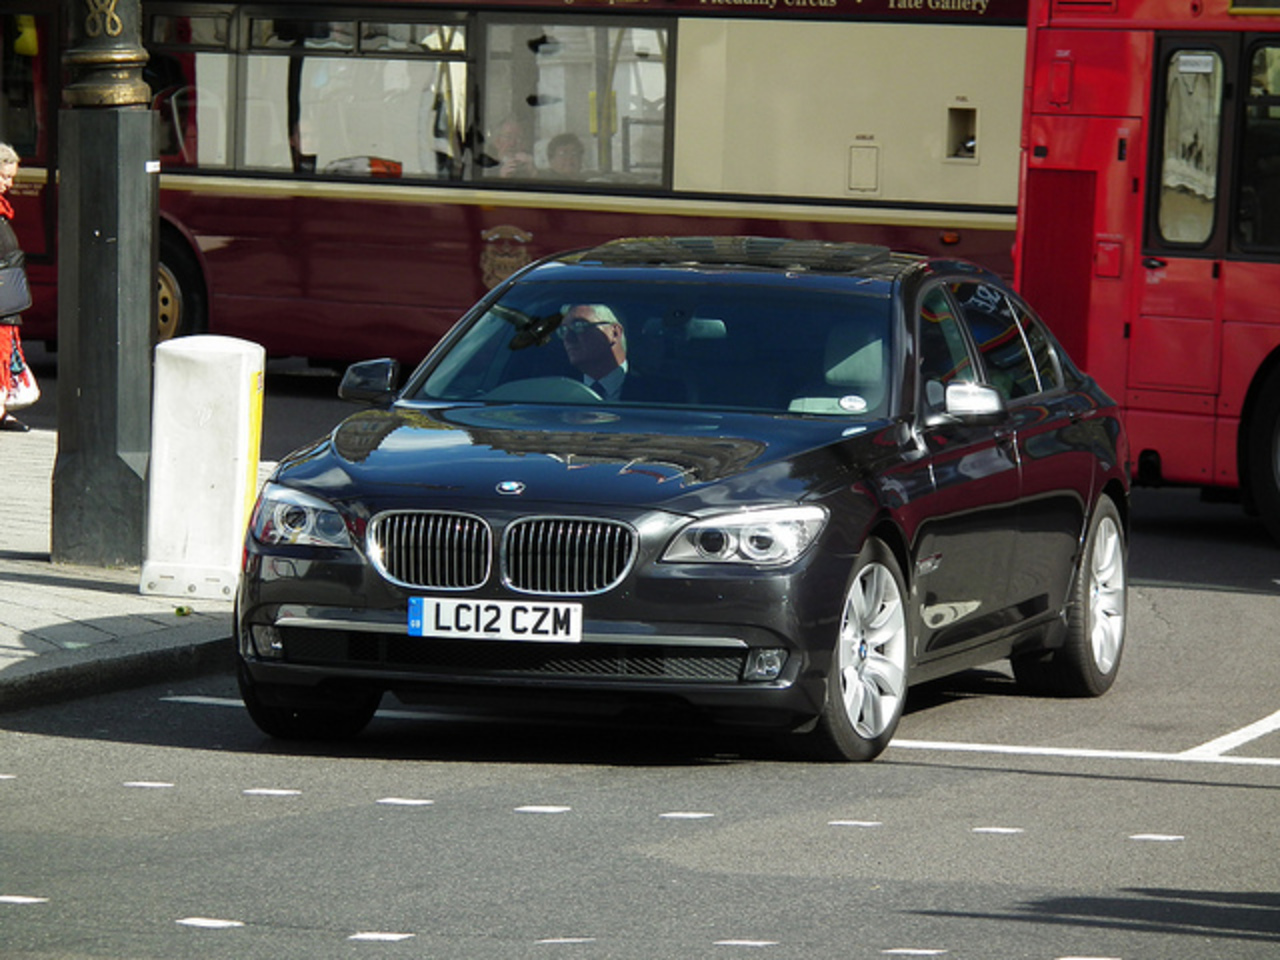 BMW 730LD Se | Flickr - Photo Sharing!